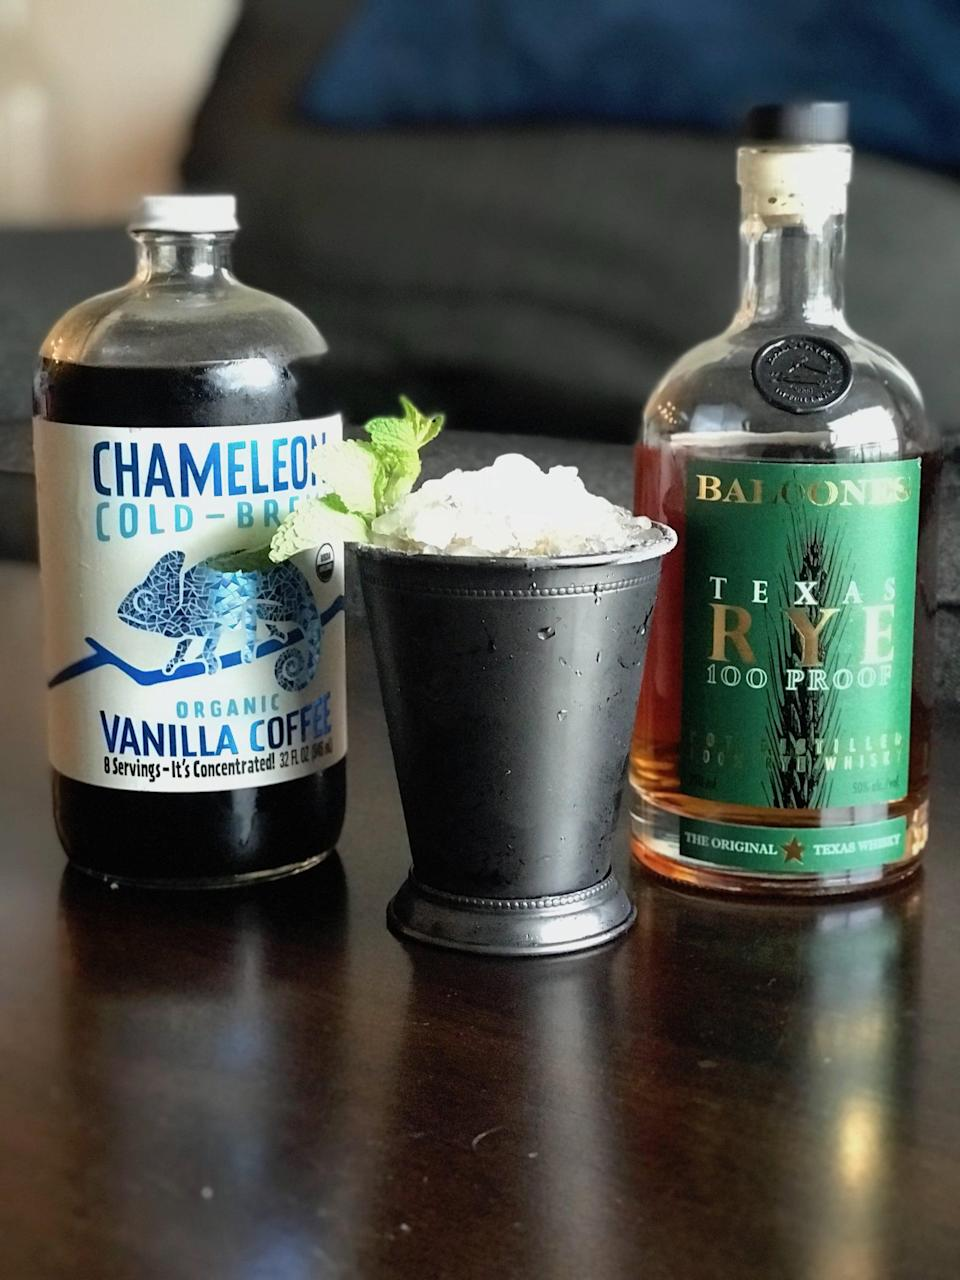 """<p>The next time you need a dose of energy and a cooldown, fix yourself this cold brew mint julep, created by Toné Castillo for <a href=""""http://www.chameleoncoldbrew.com/recipe/cold-brew-mint-julep-recipe/"""" class=""""link rapid-noclick-resp"""" rel=""""nofollow noopener"""" target=""""_blank"""" data-ylk=""""slk:Chameleon"""">Chameleon</a>. </p> <p>Ingredients: </p> <ul> <li>2 oz. Balcones Rye </li> <li>1 oz. Chameleon Cold-Brew Vanilla Coffee Concentrate </li> <li>10 mint leaves </li> <li>3/4 oz. simple syrup </li> </ul> <p><strong>Directions: </strong>Muddle 10 mint leaves with simple syrup in a shaker, then add rye and the Chameleon cold brew. Shake well, then pour over an ice-filled glass and garnish with a sprig of mint. </p>"""